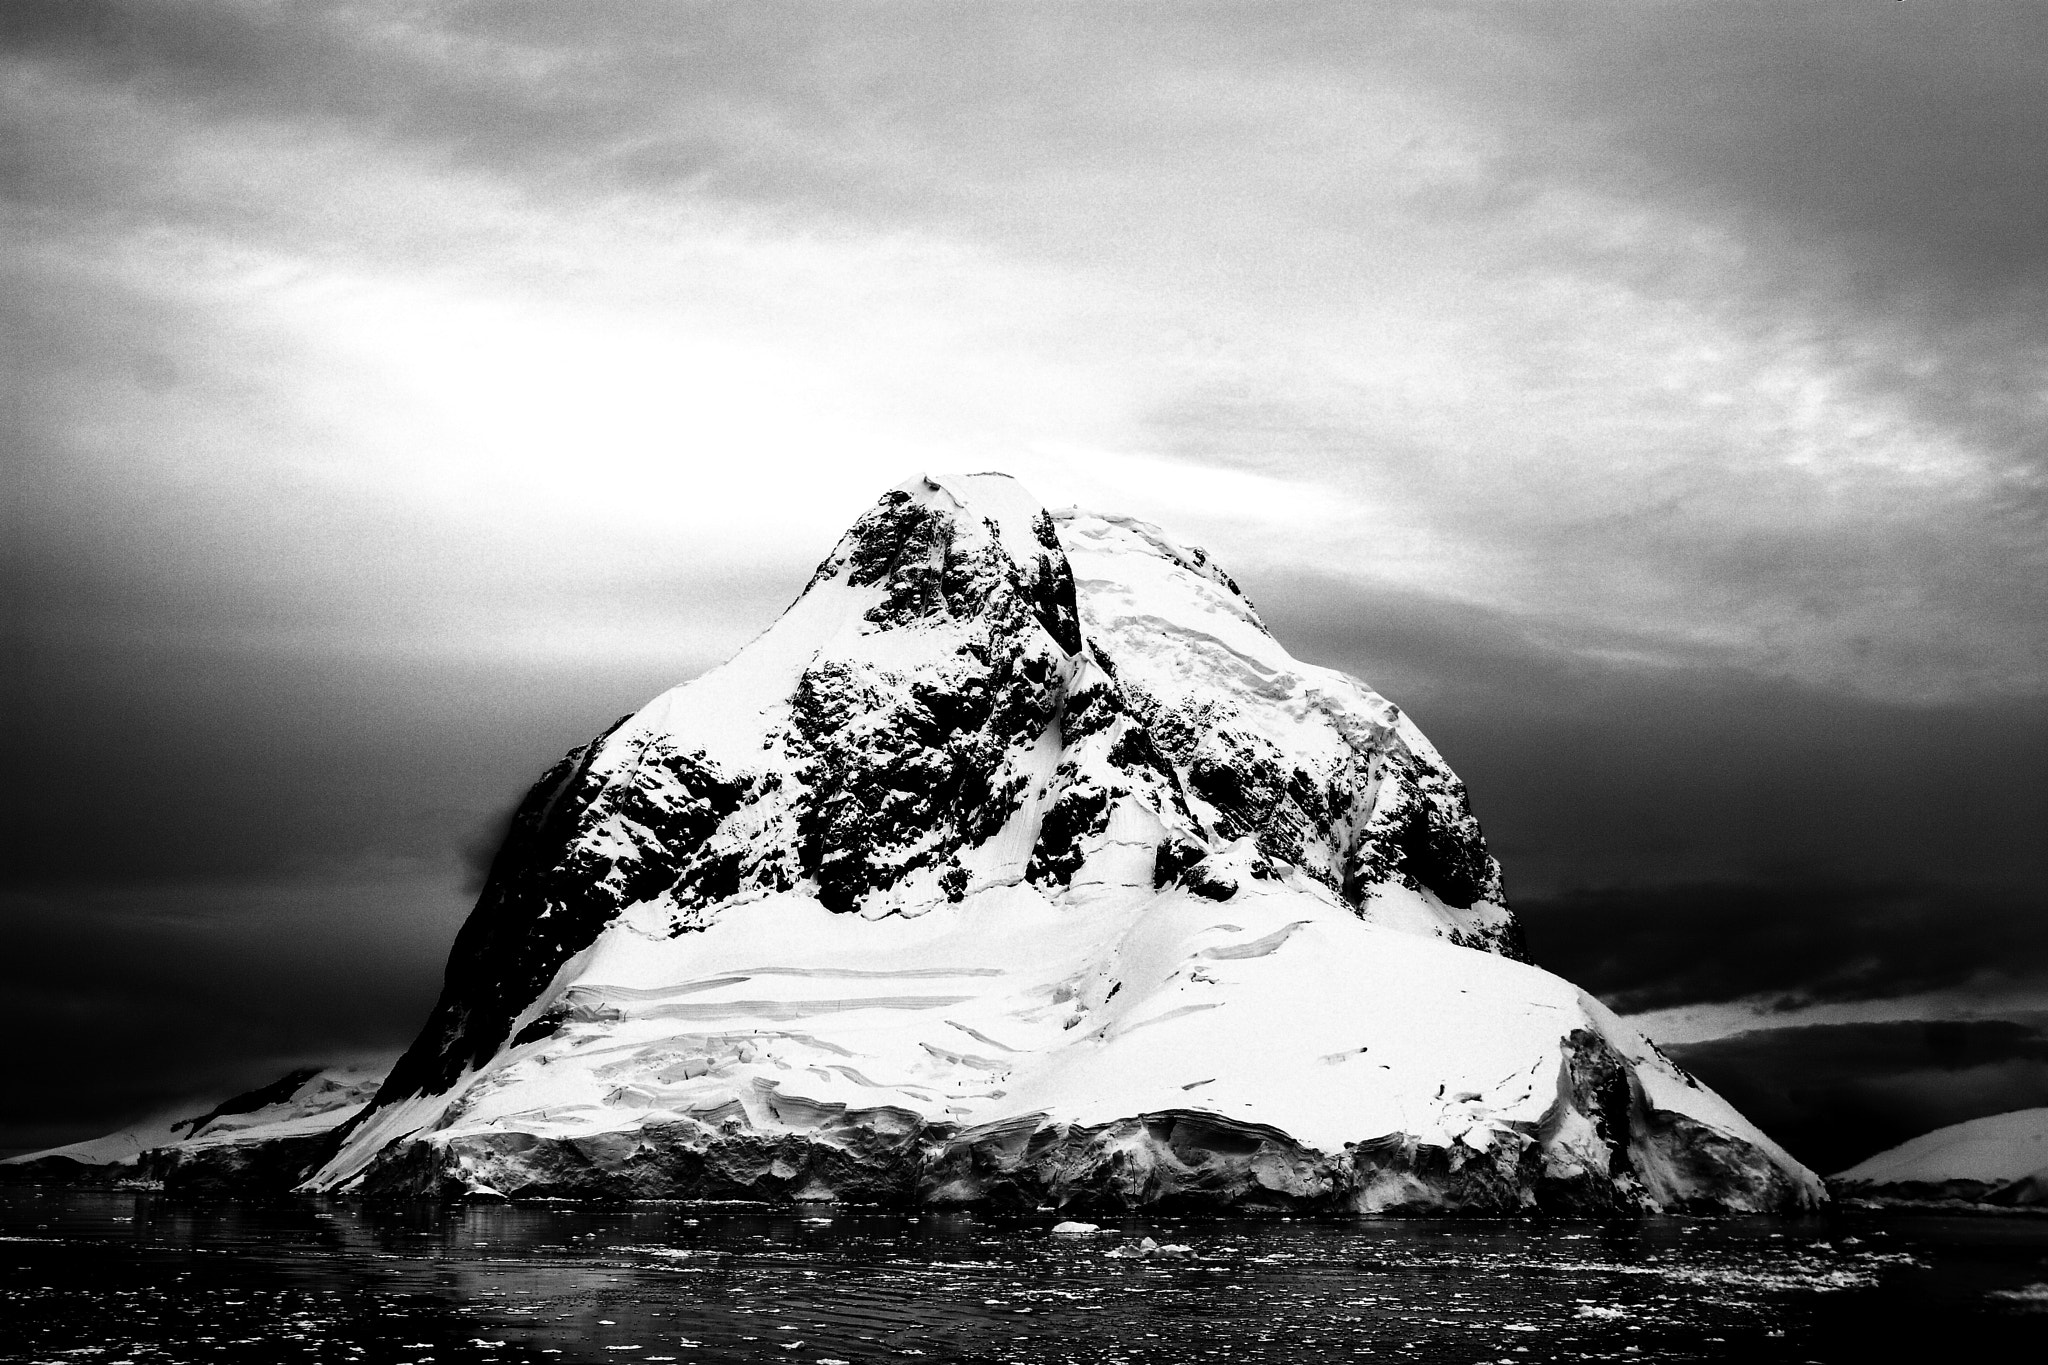 Photograph The Peak Stands Proud by Alistair Knock on 500px